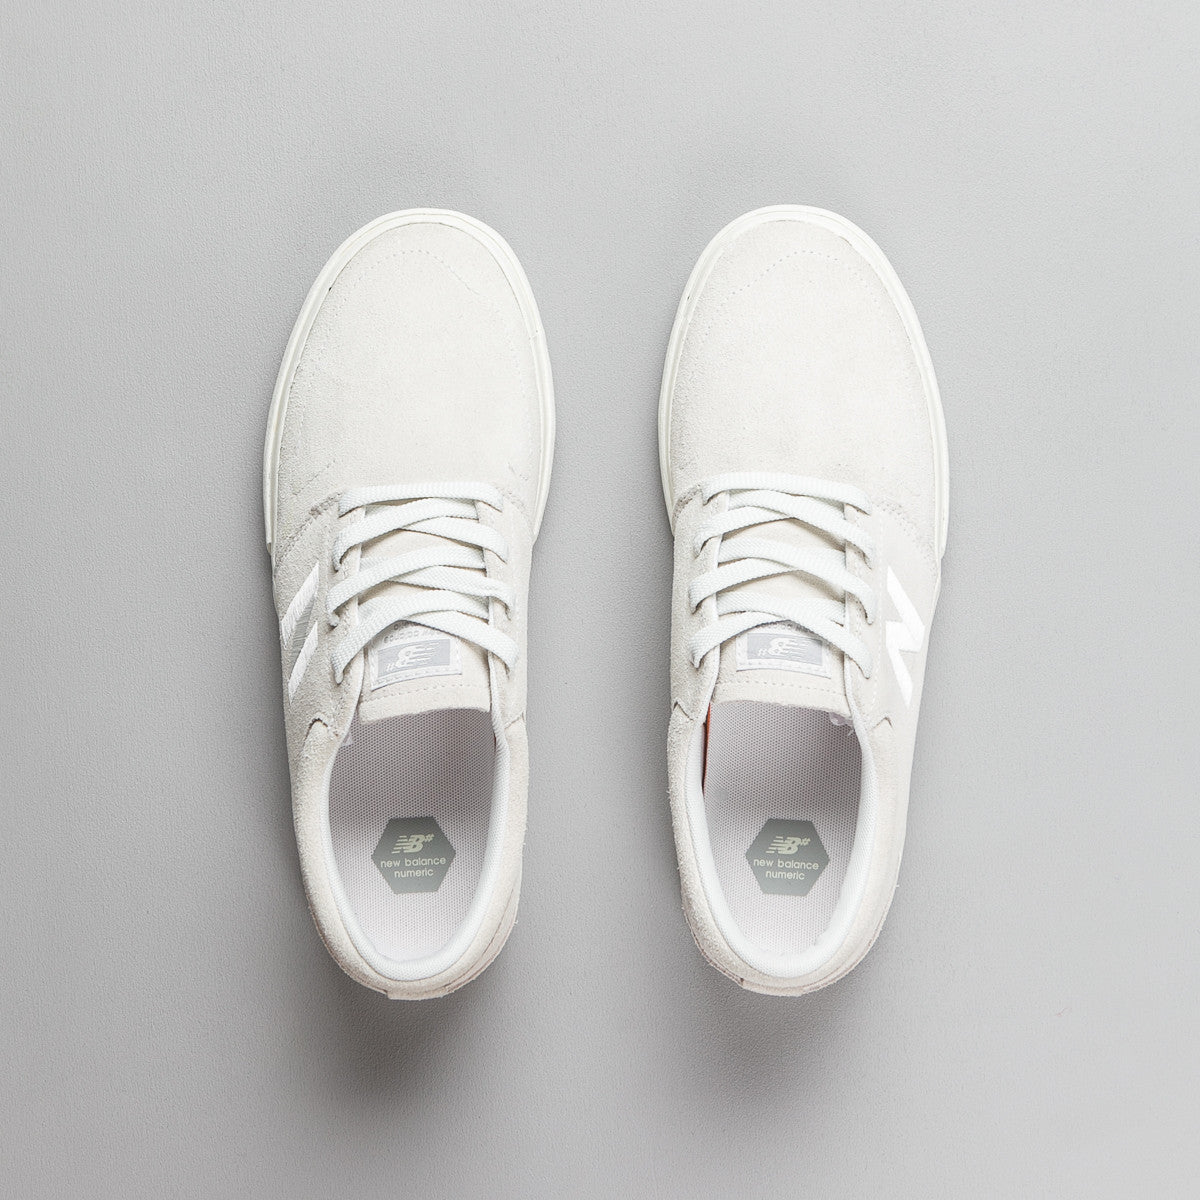 uk availability c43a3 0ccc0 new-balance-numeric-brighton-344-shoes-white-light-grey-7.jpg